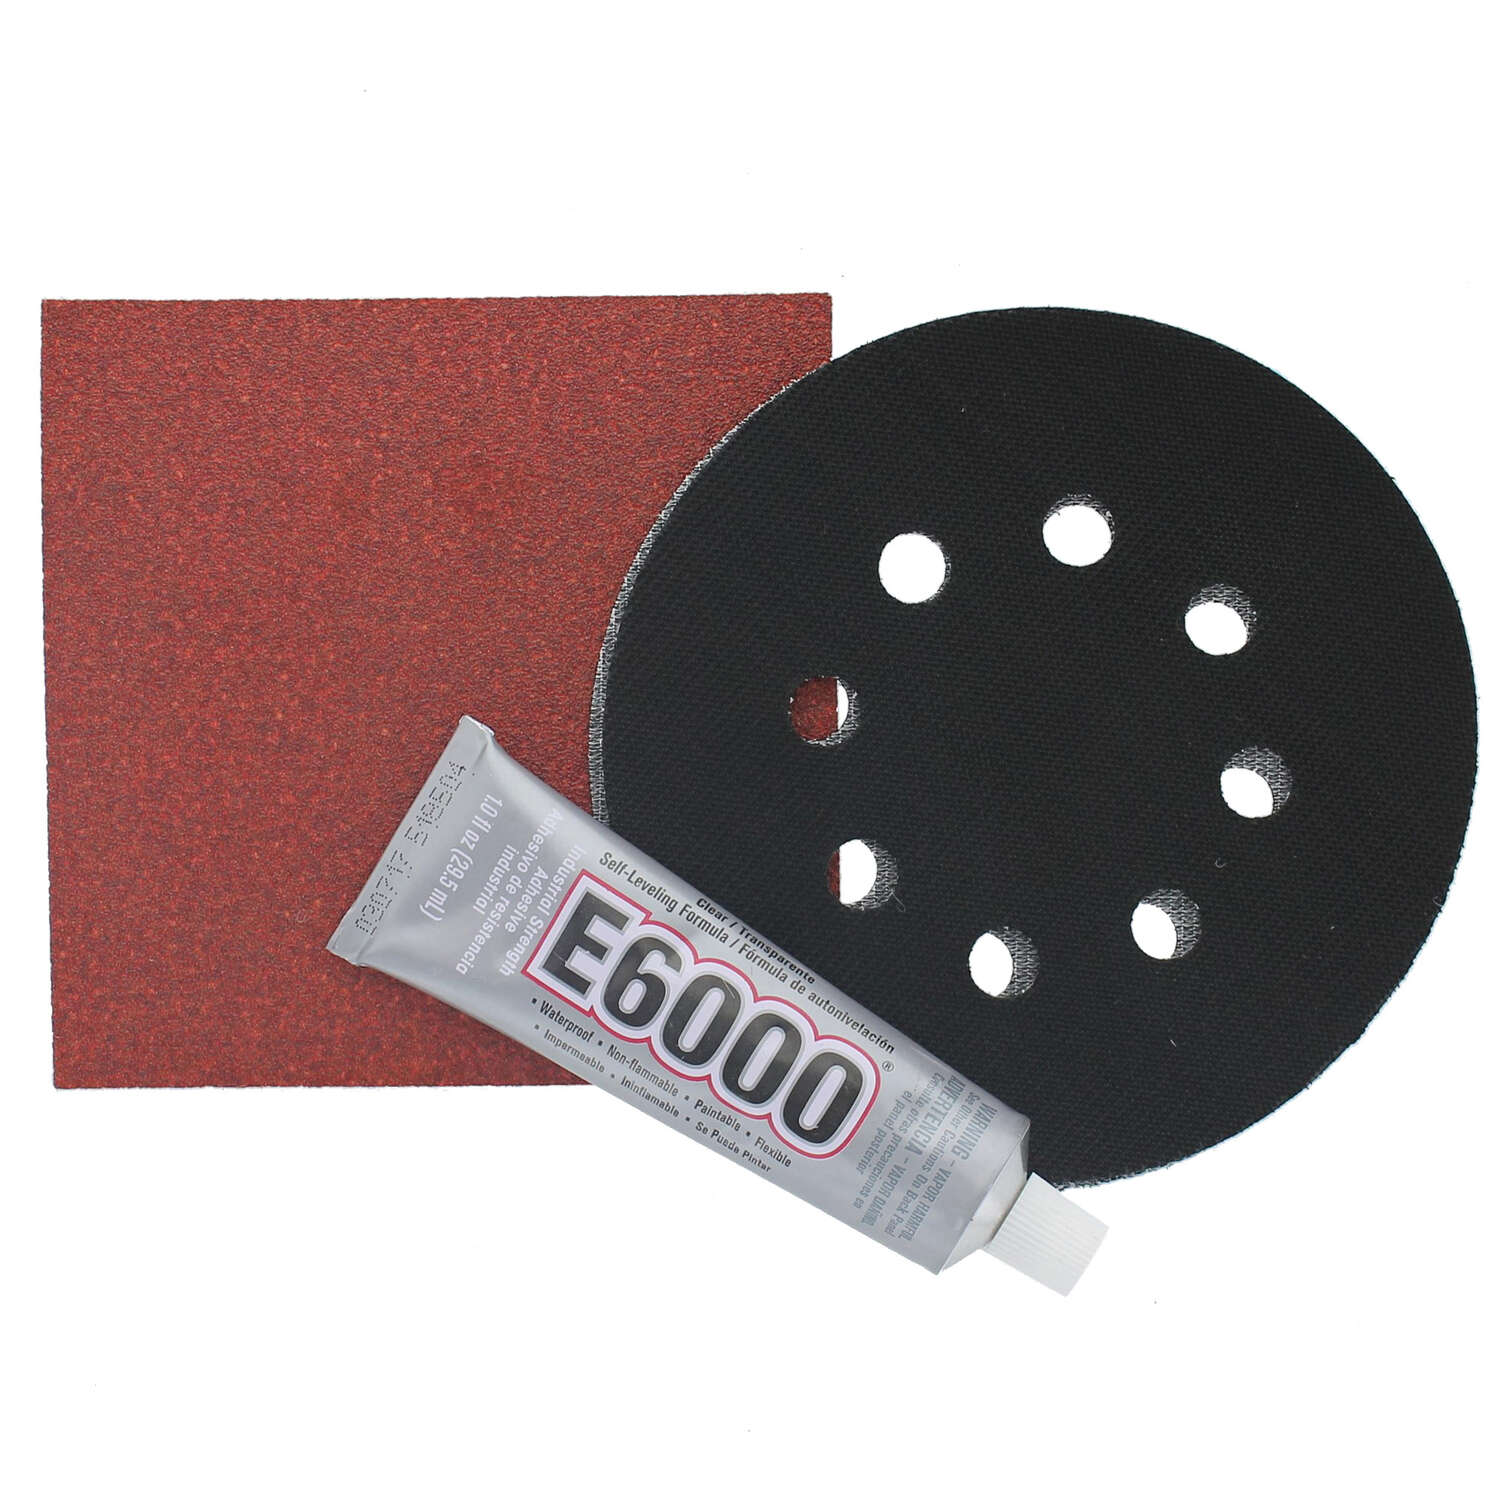 Gator  Rubber  Replacement Pad  12000 rpm 2 pc.